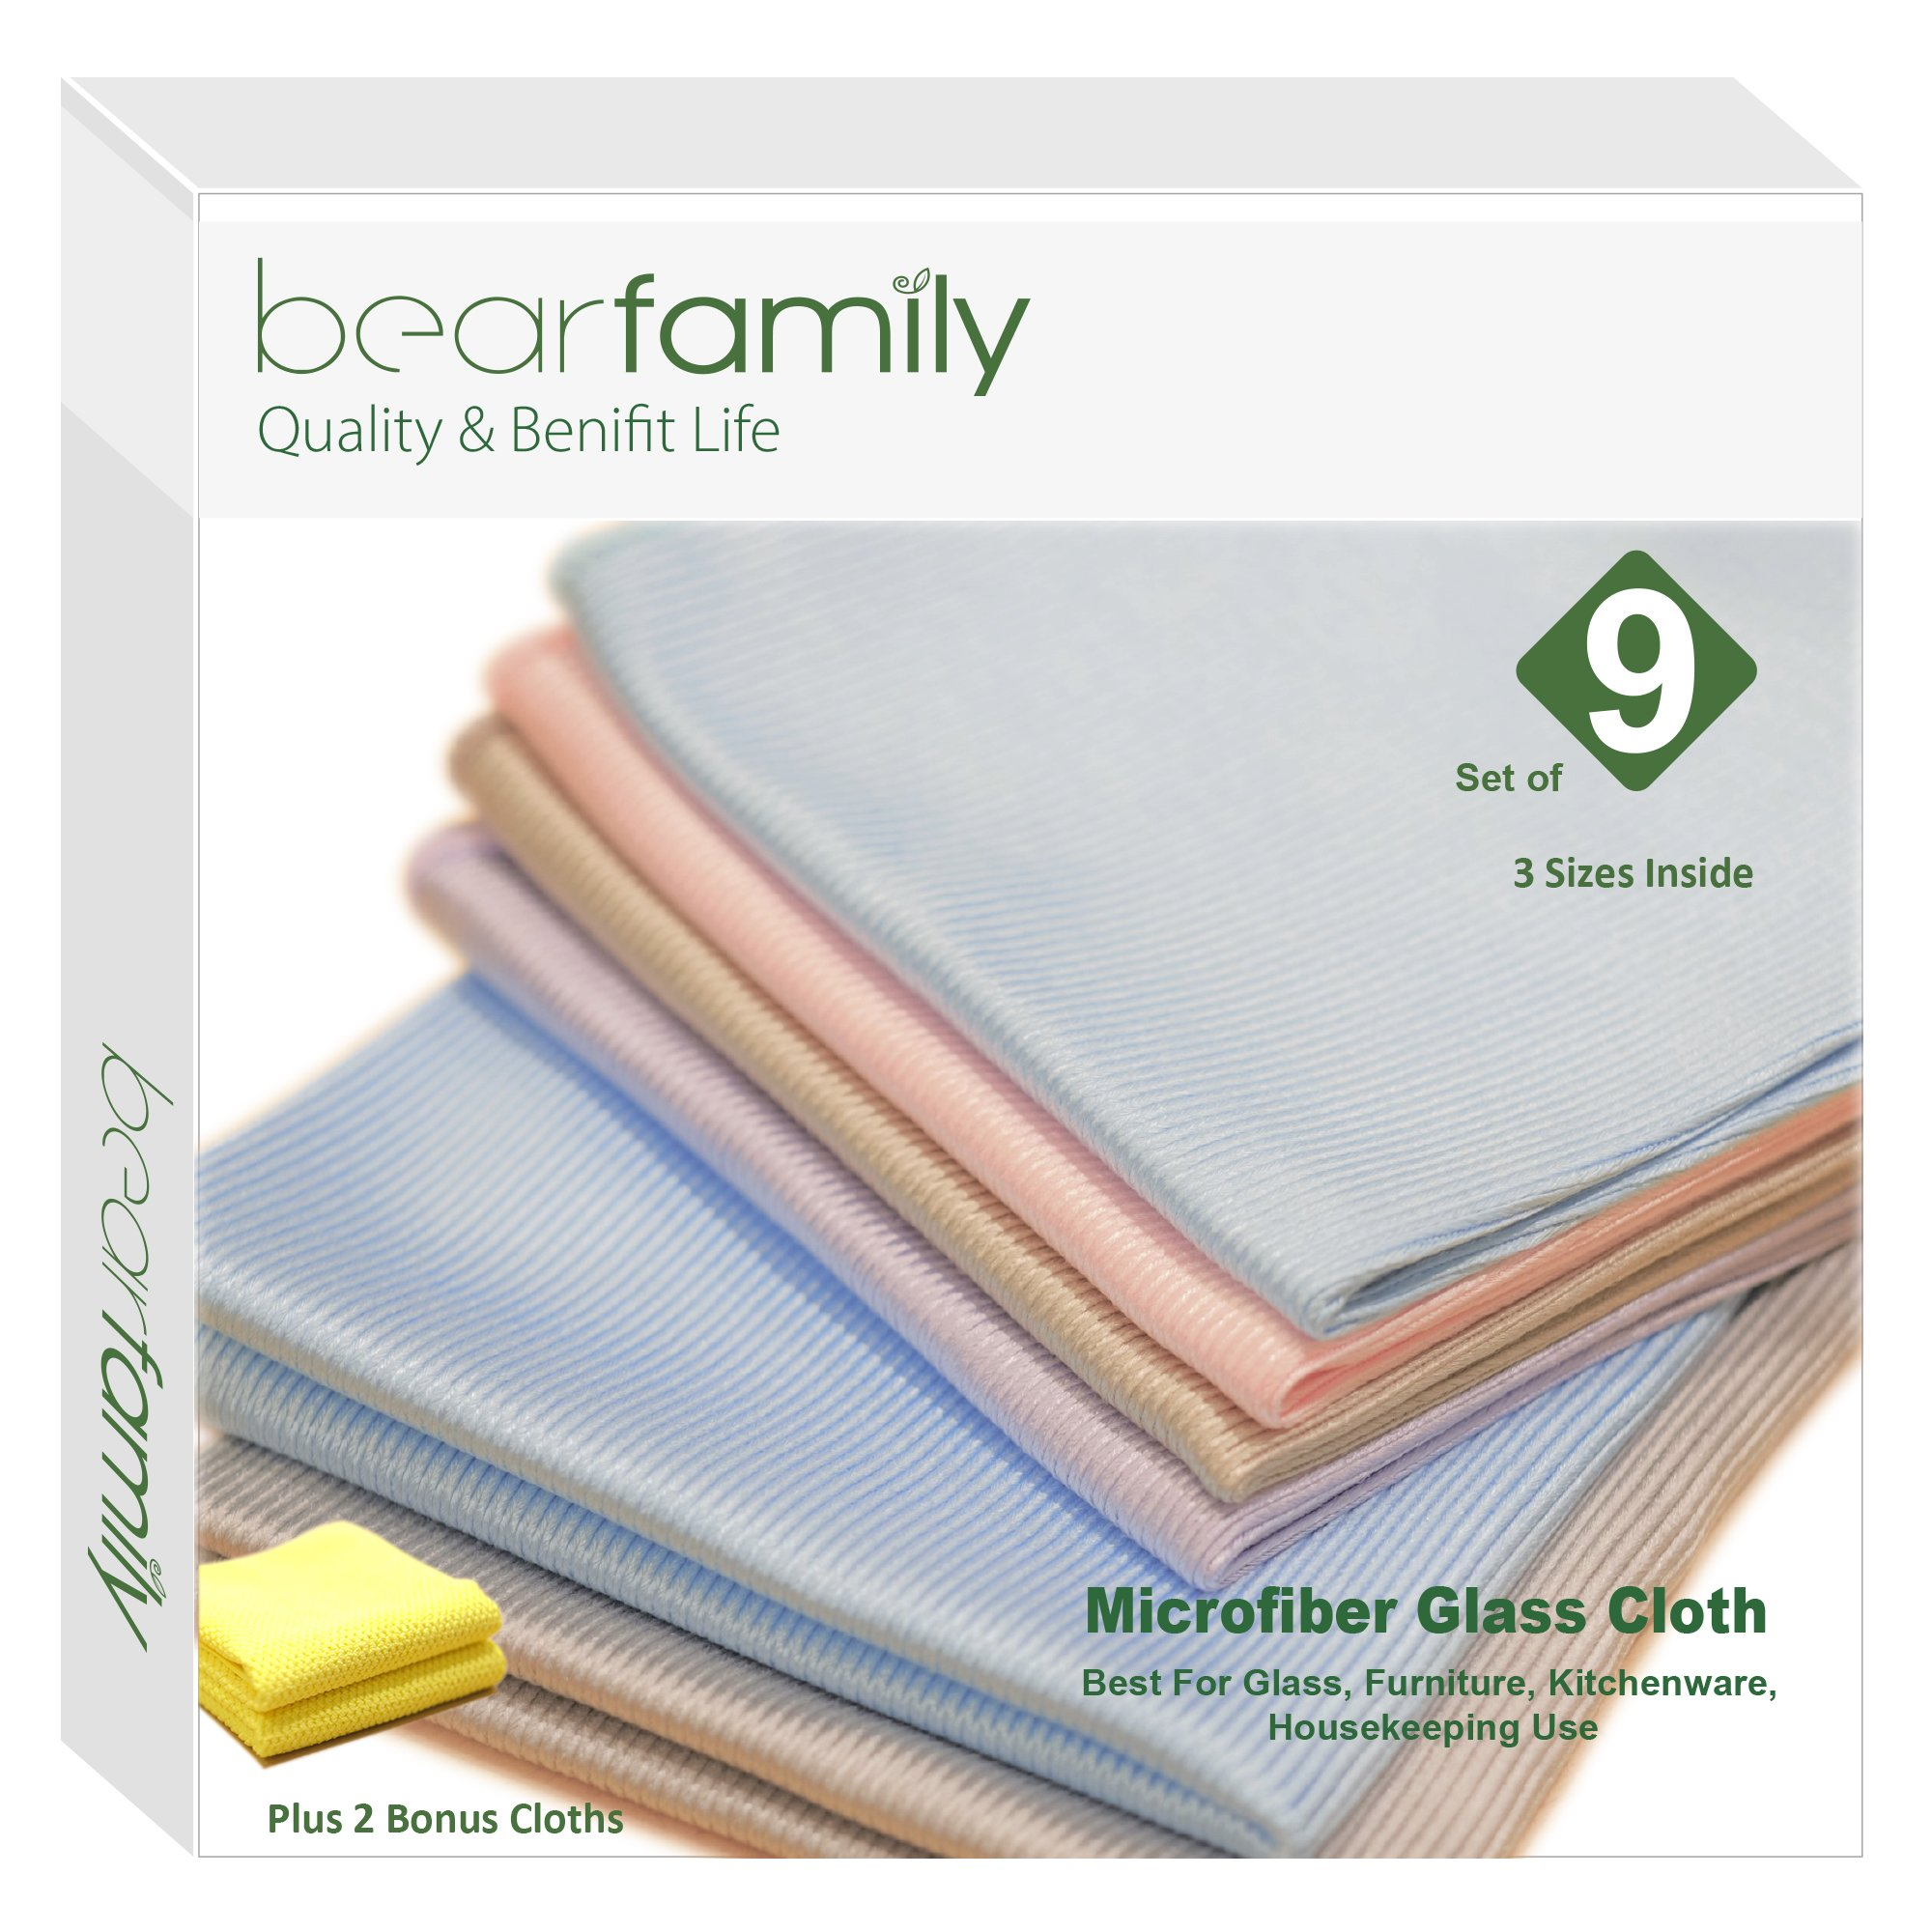 Bear Family Microfiber Glass Cleaning Cloths - Lint Free - Streak Free | Quickly and Easily Clean Windows & Mirrors Without Chemicals with 2 bonus Cloth Pack of 11, Mix color